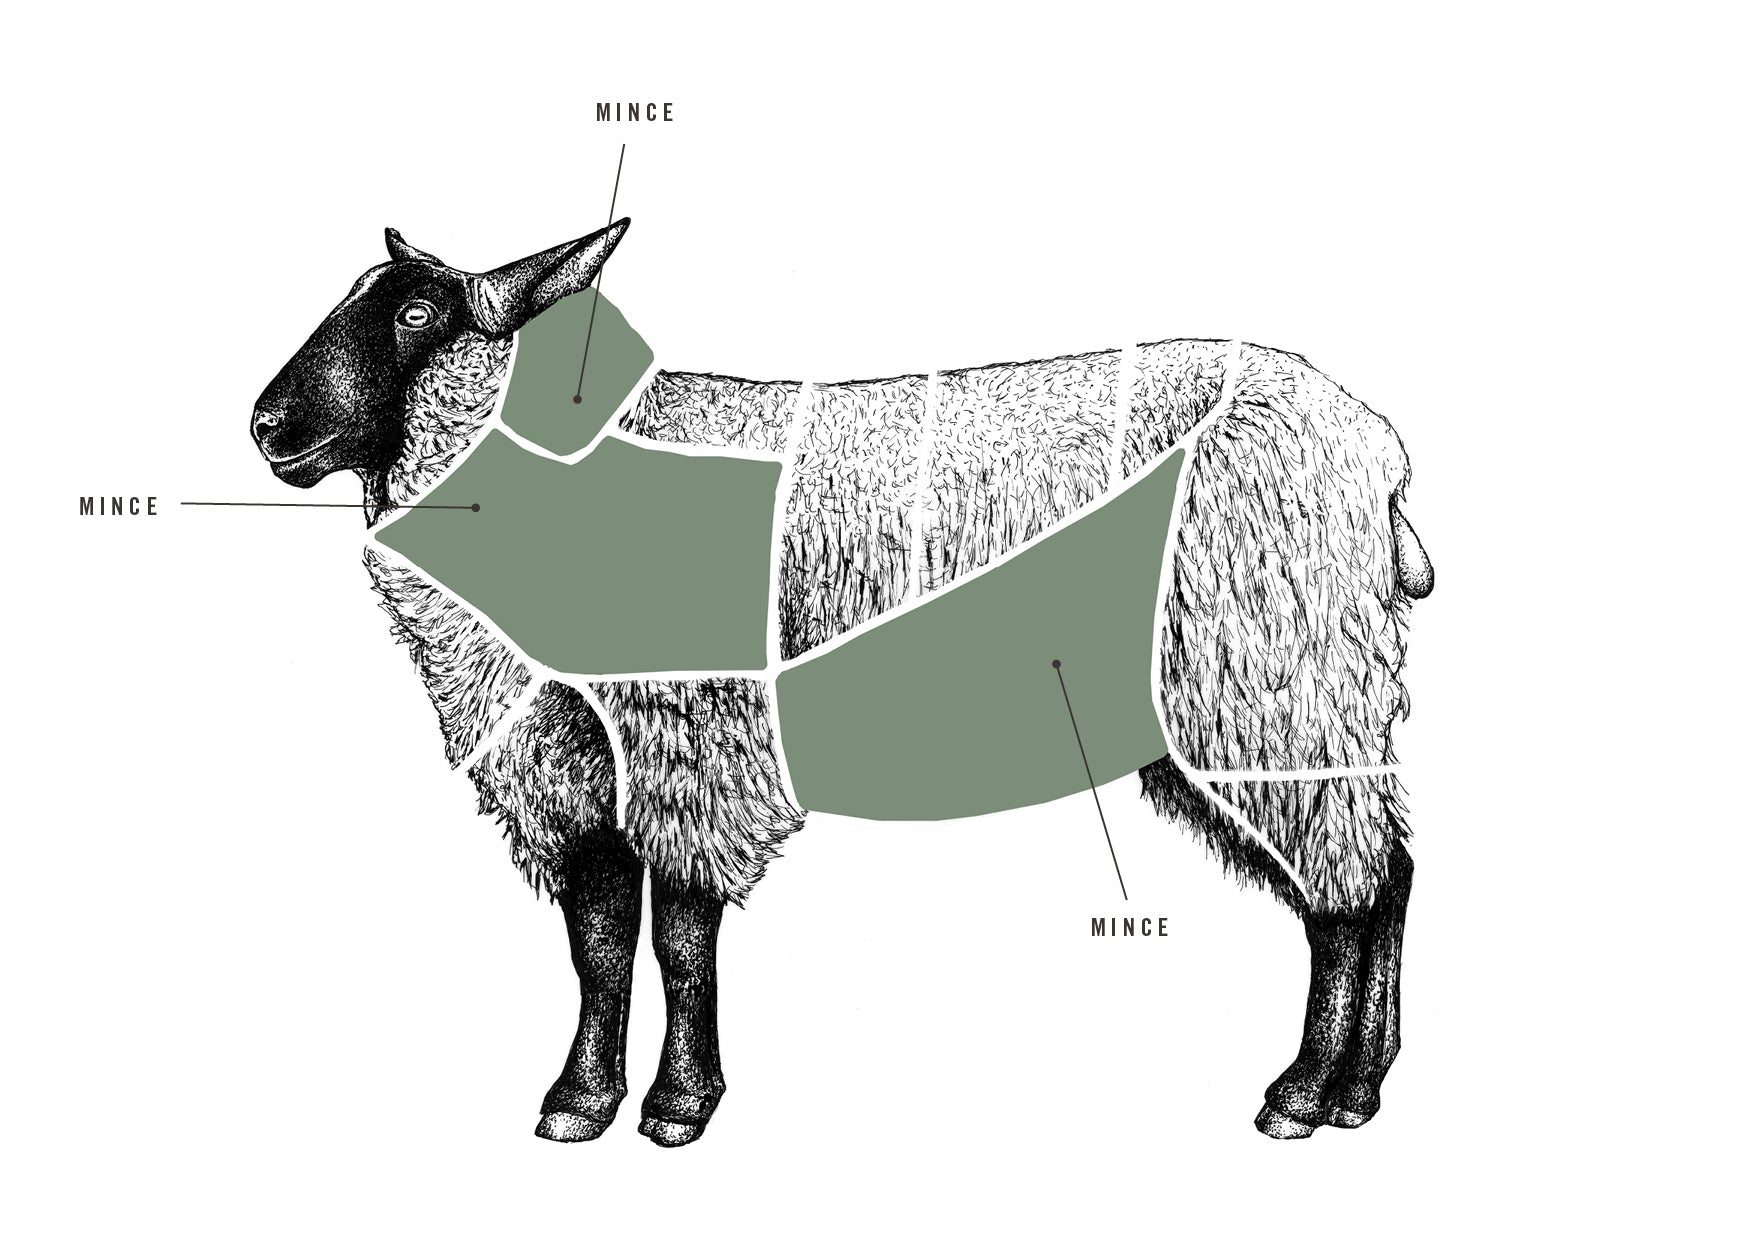 Lamb Mince meat cuts diagram